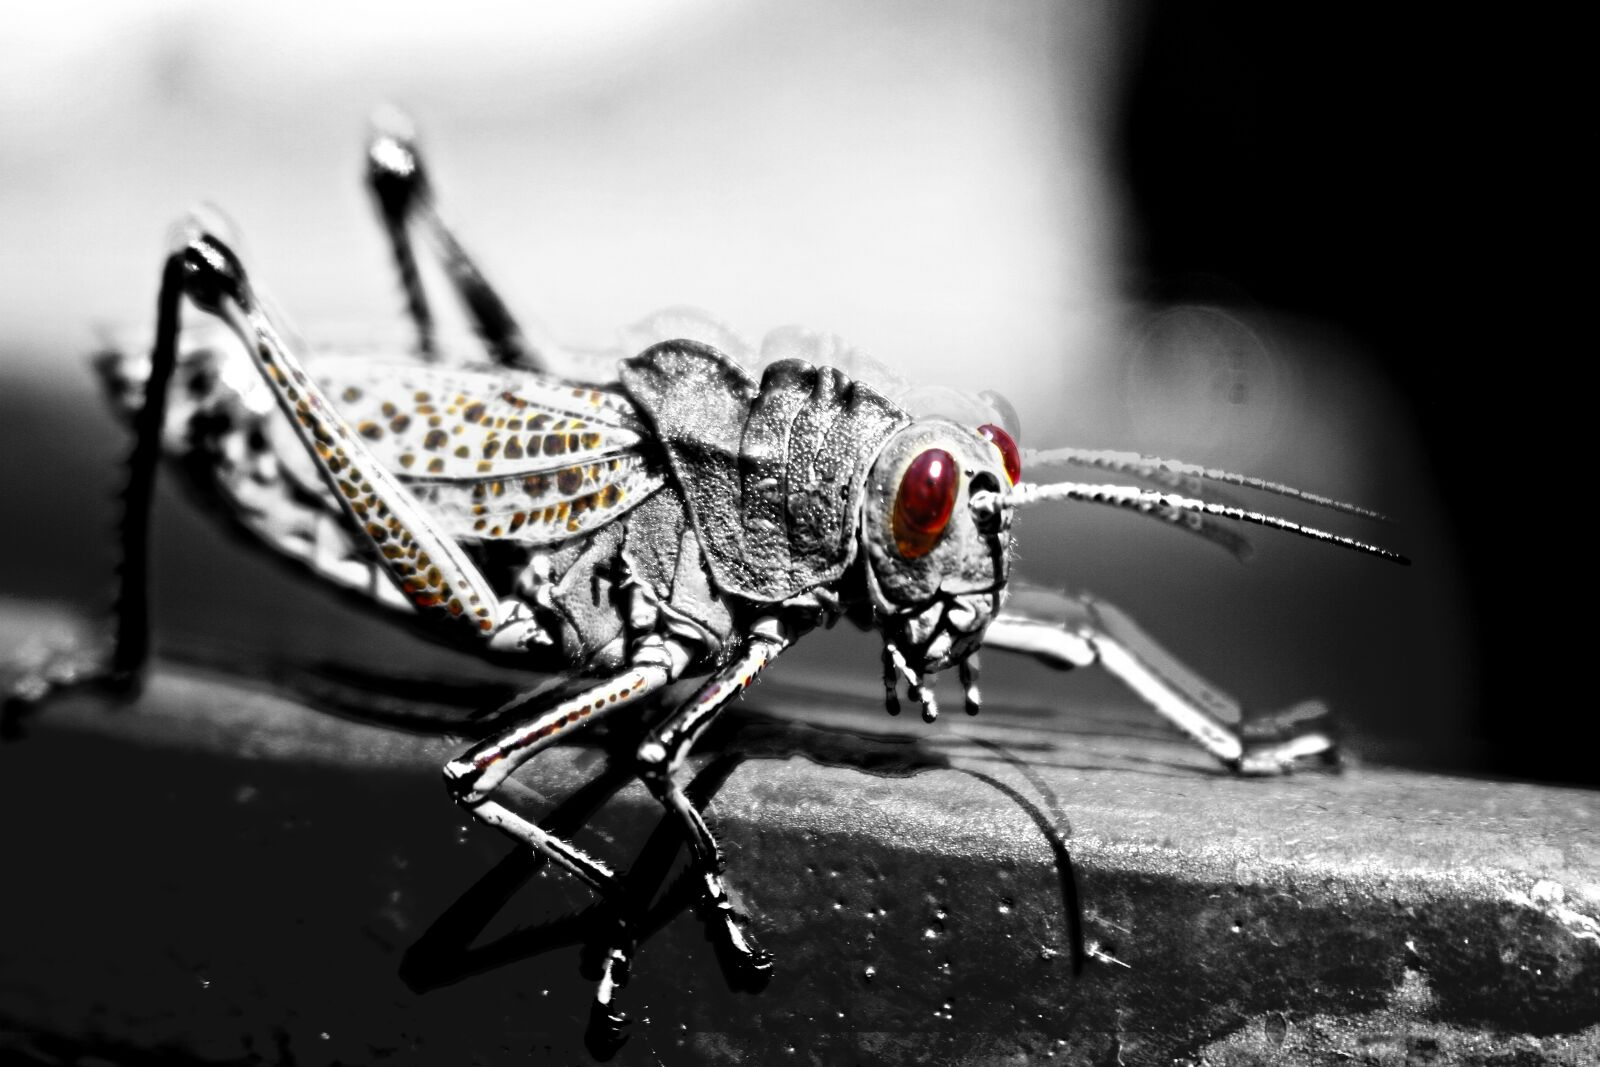 """Canon EOS 7D sample photo. """"Cricket, insect, nature"""" photography"""